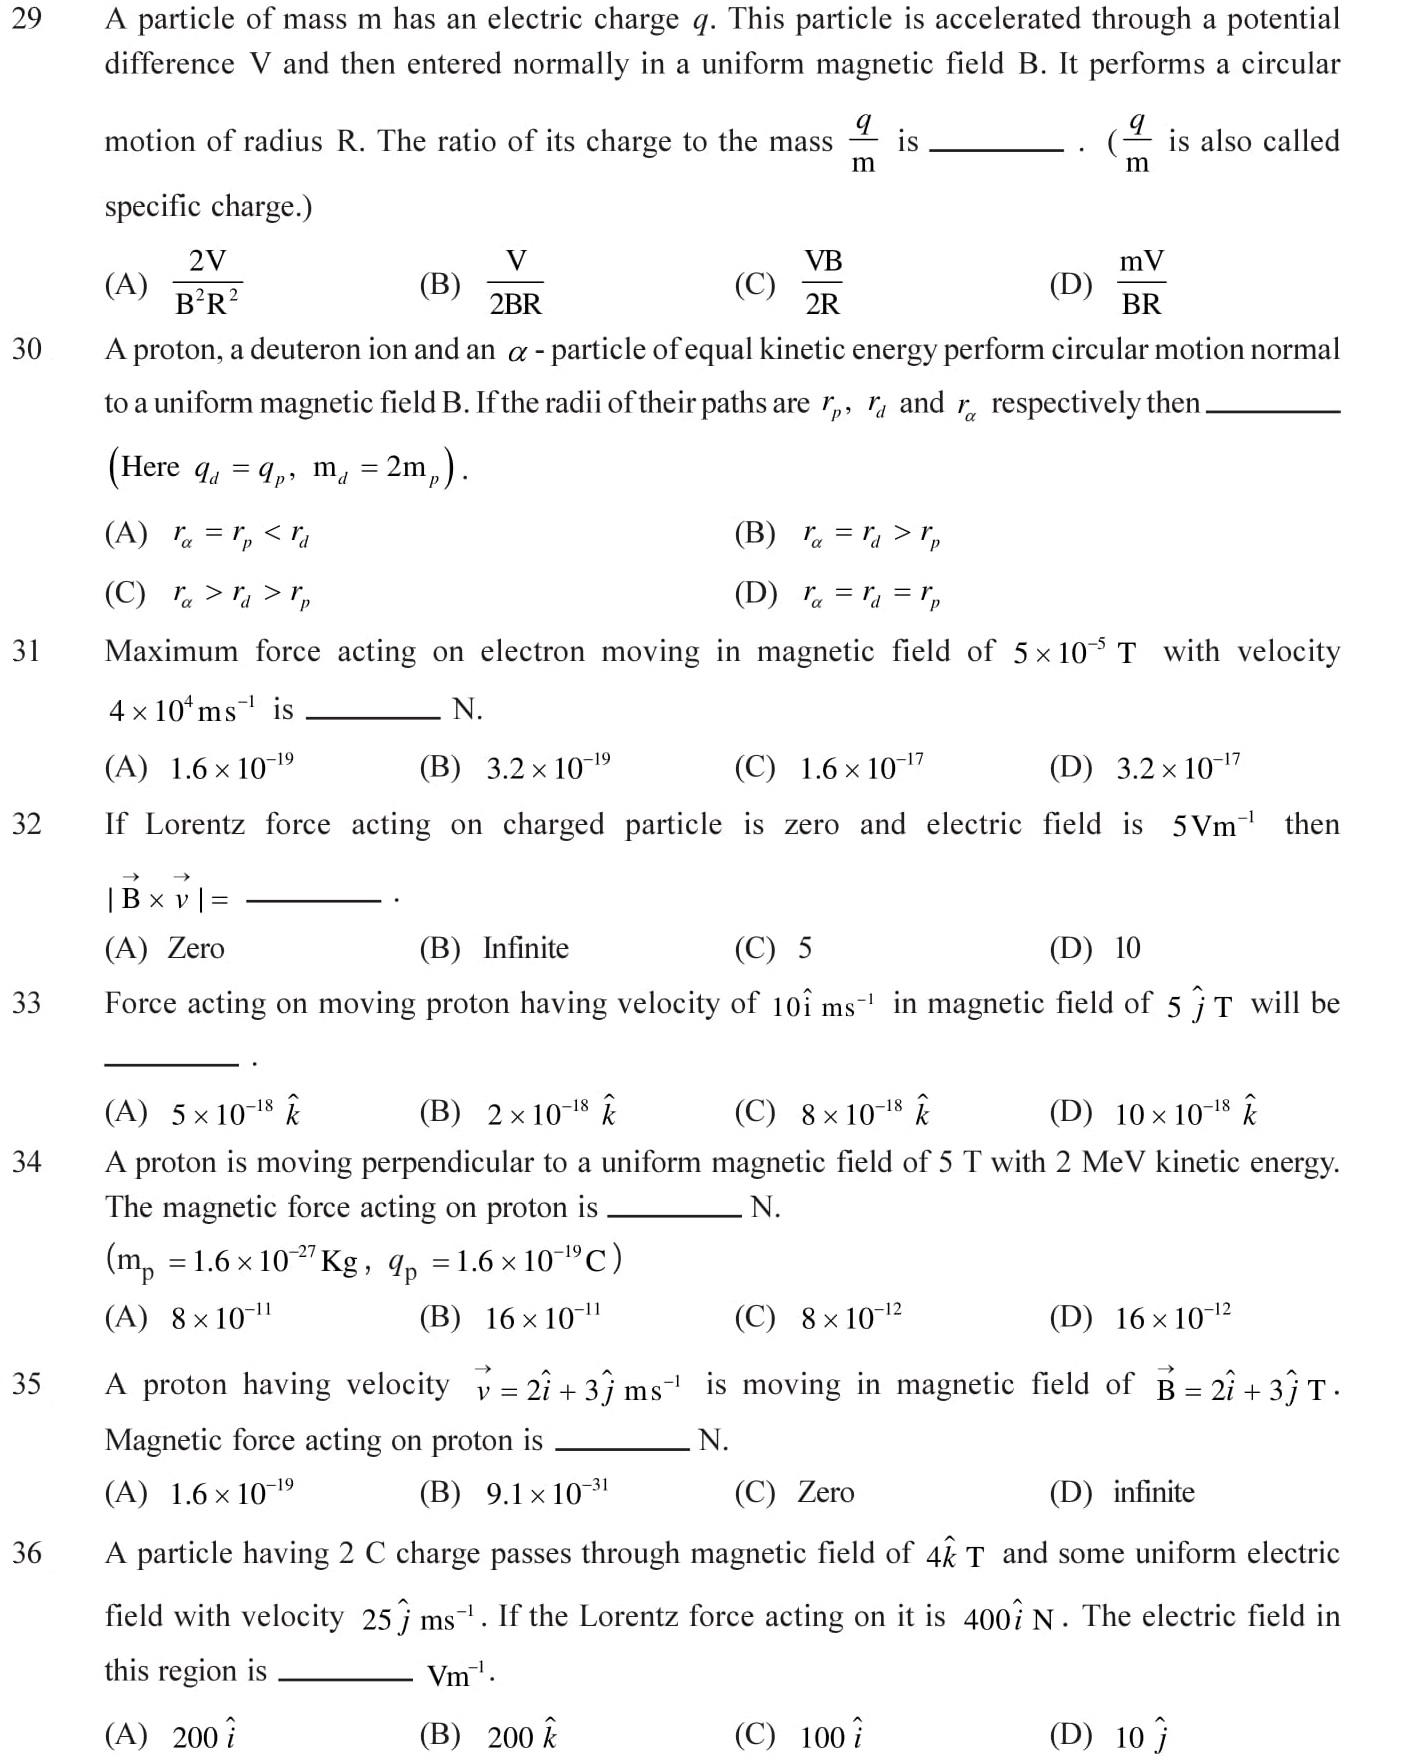 12-Physics-Moving-Charges-Magnetism-NEET-JEE-IIT-Questions-Topic-6